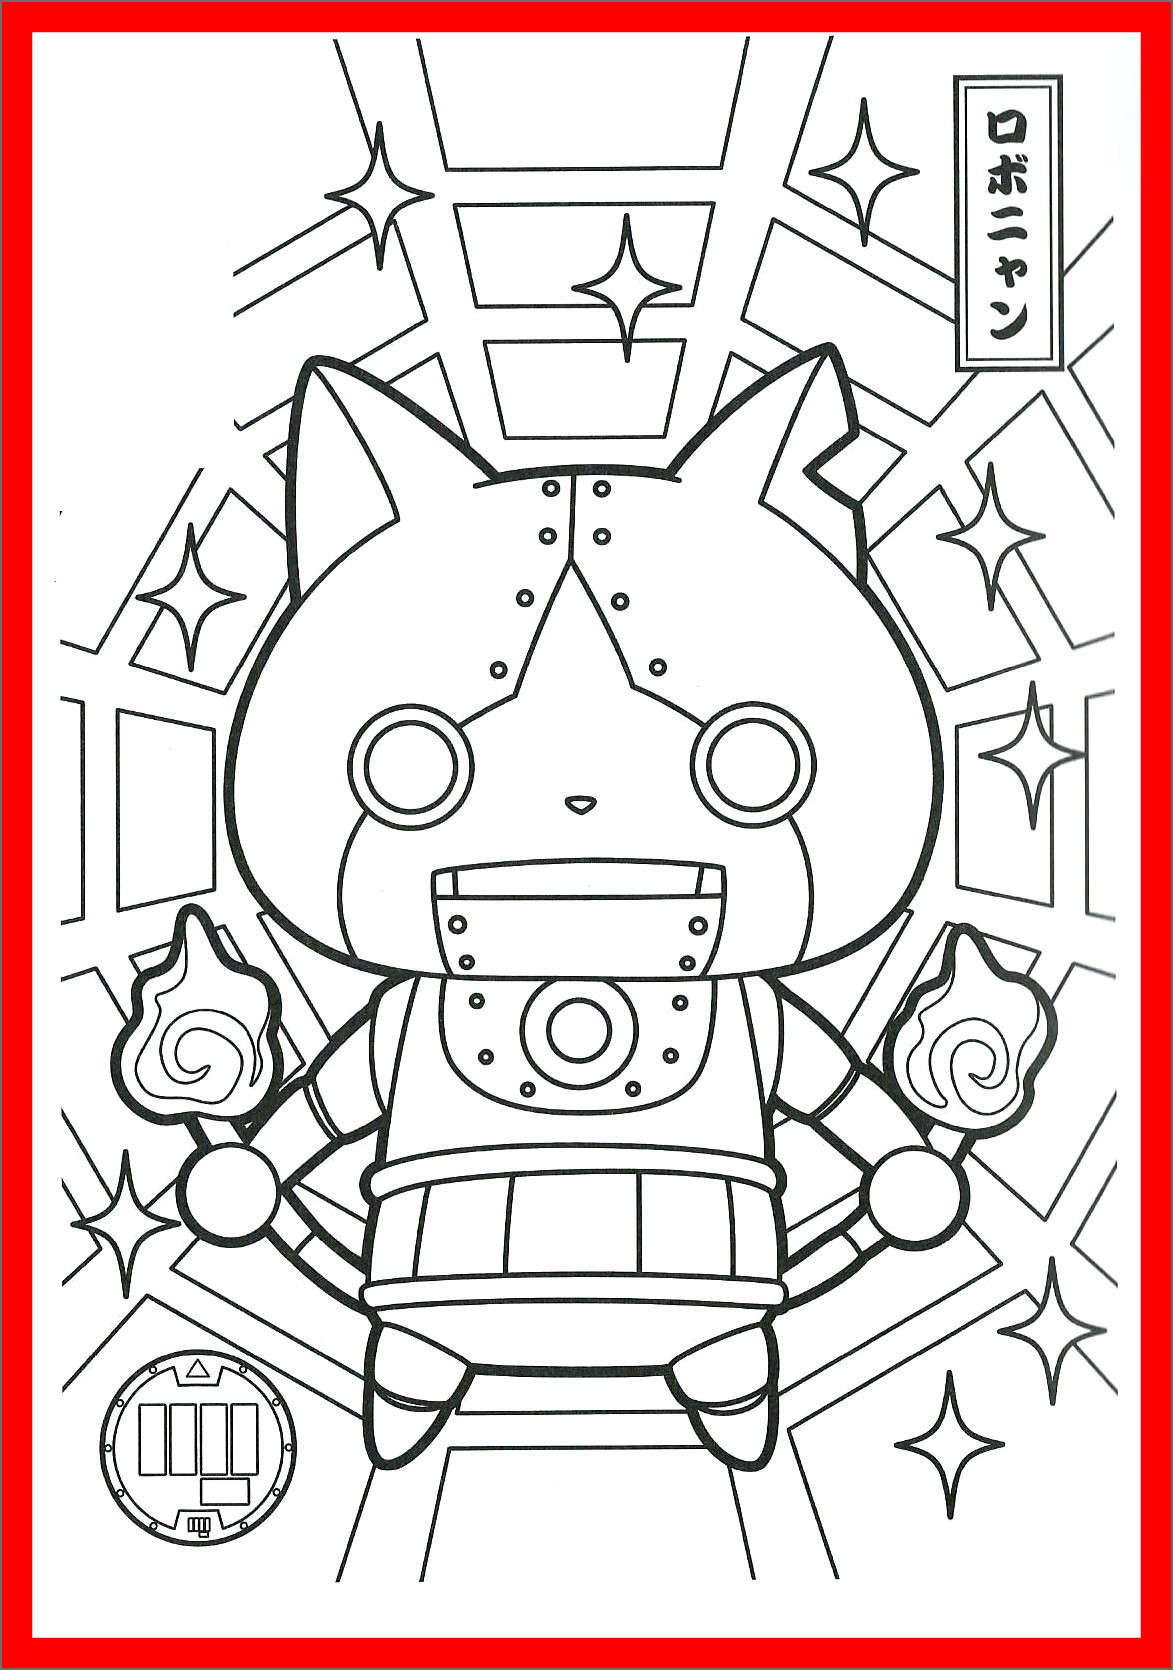 Yo Kai Watch Coloring Pages - Coloriage De Yo Kai Watch A Imprimer – Botlbrush